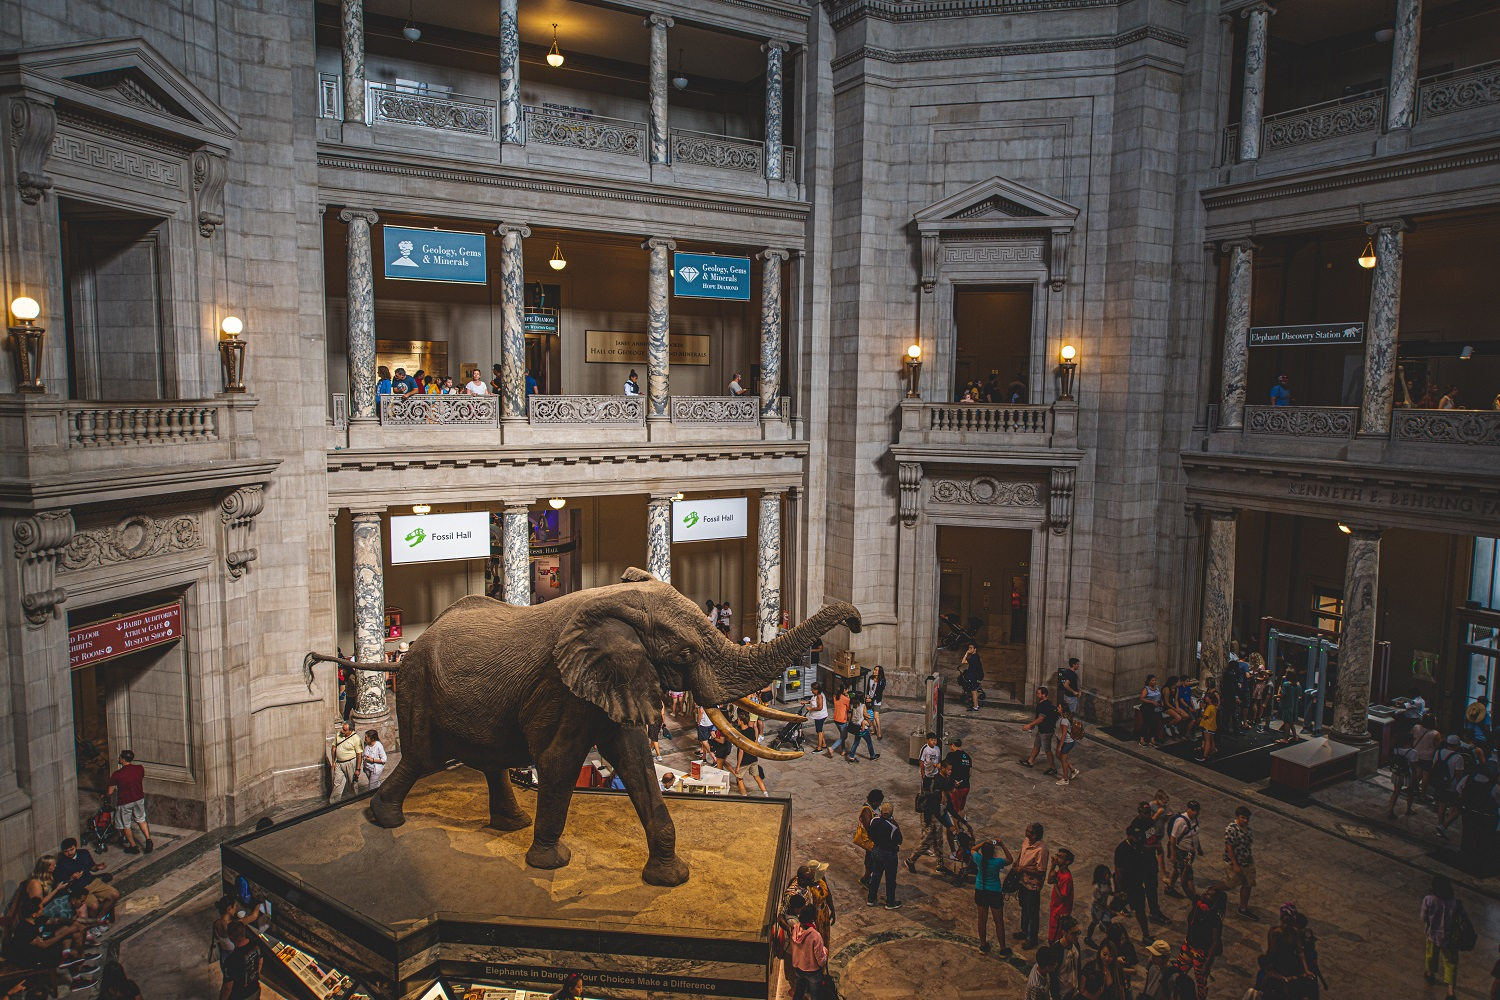 Interior rotunda of the American Museum of Natural History with a large taxidermied elephant and a large crowd of people. Taken from above.